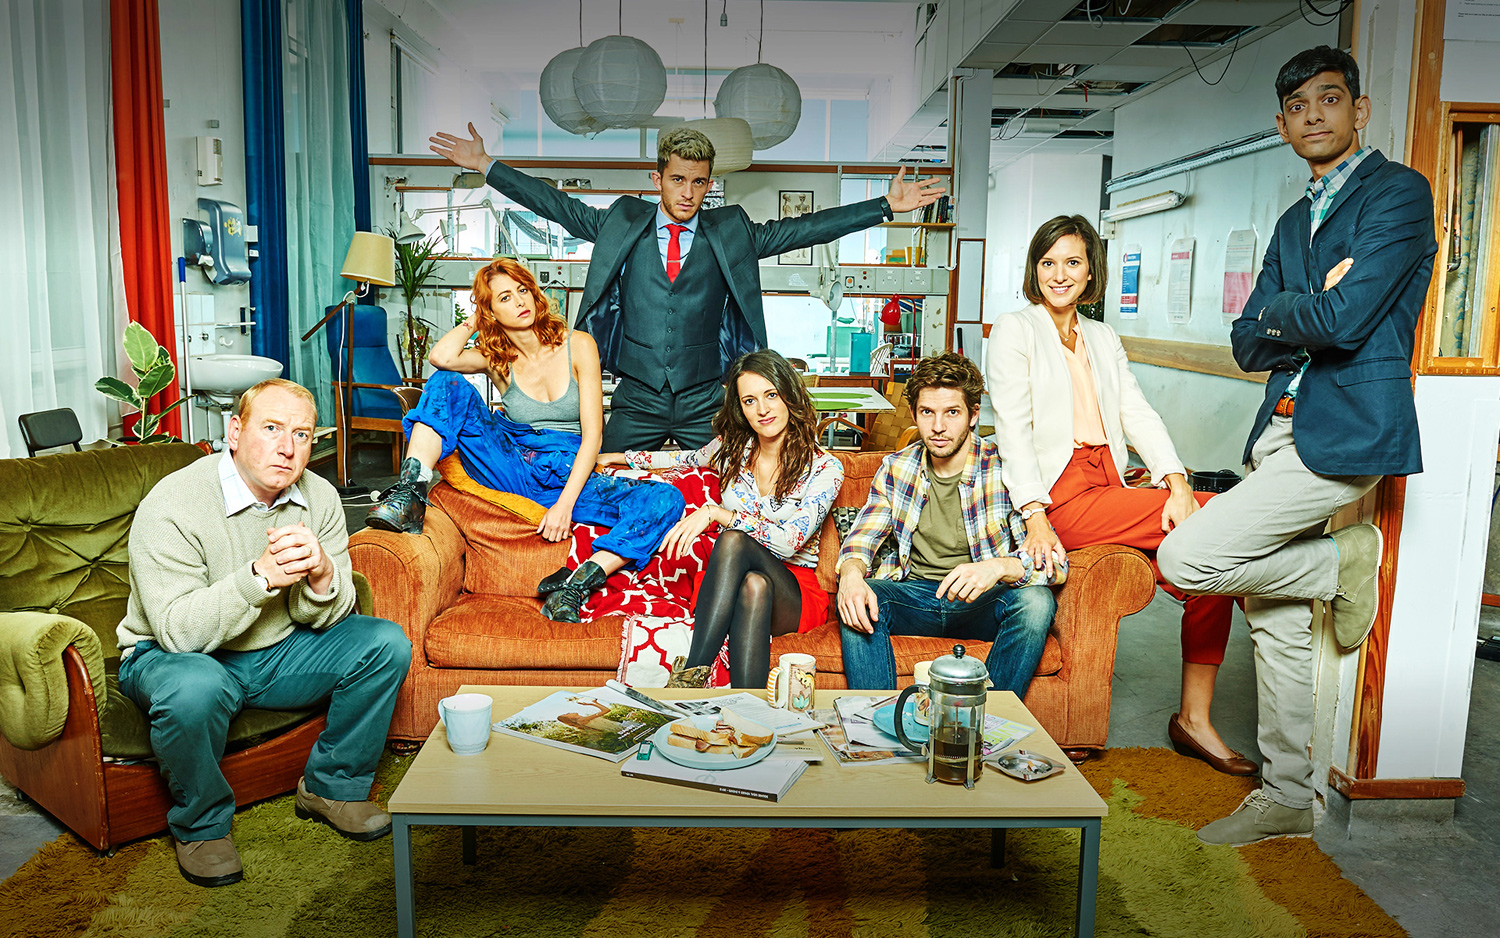 la-coutch-blog-coutch-coeur-11-crashing-serie-tv